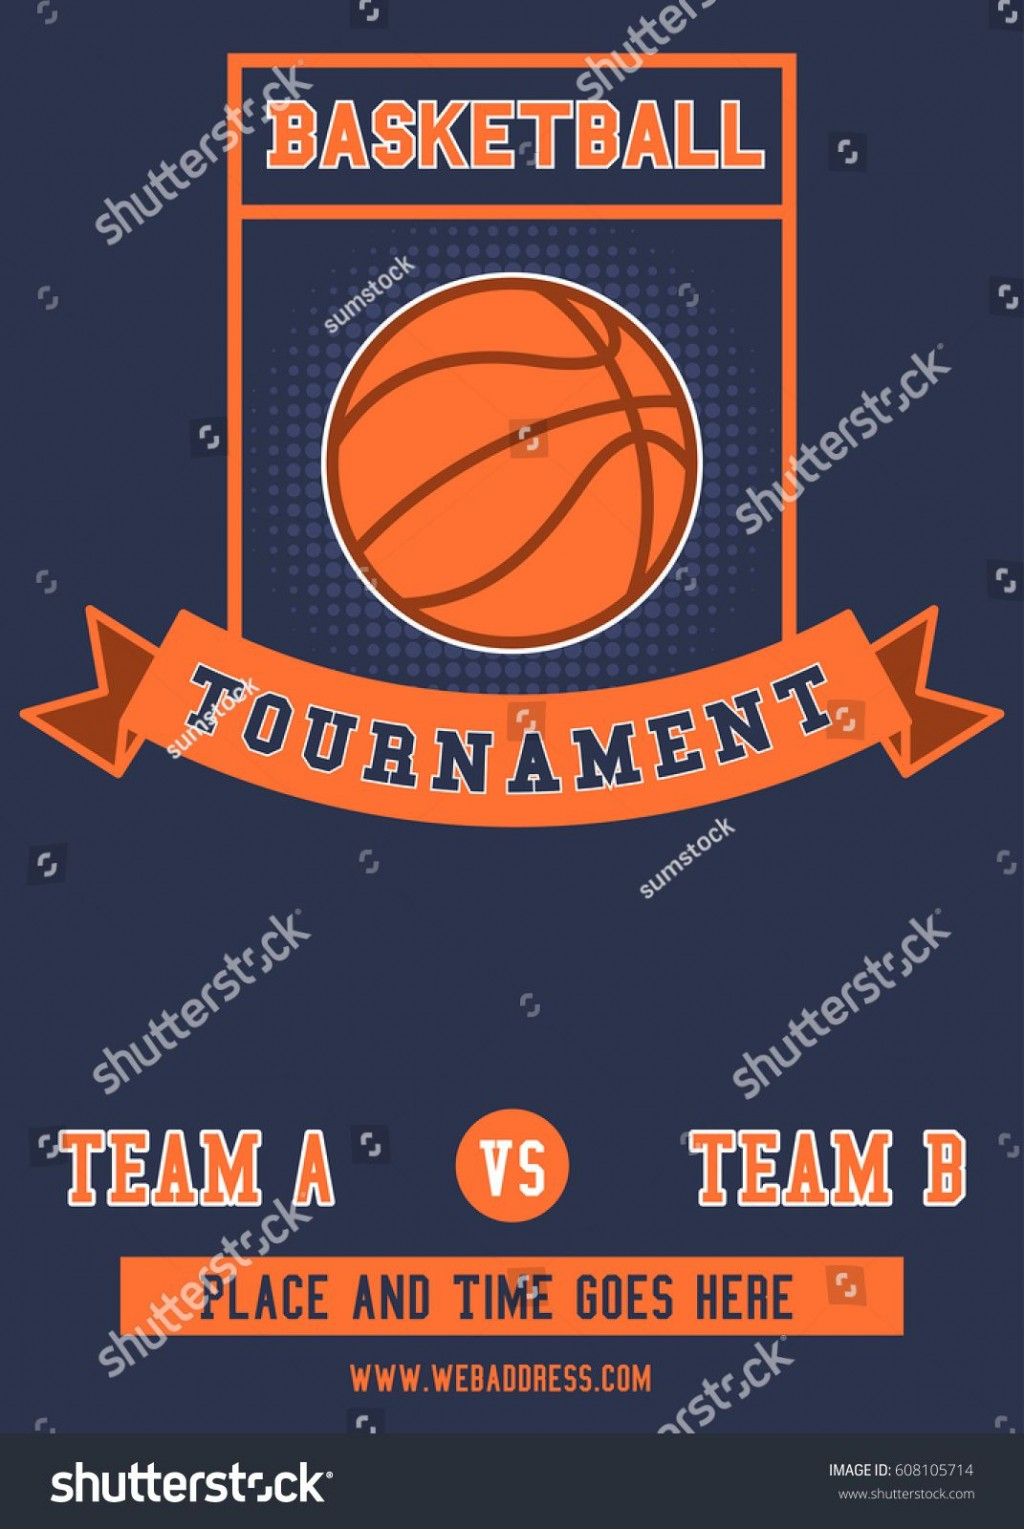 010 Imposing Basketball Tournament Flyer Template High Definition  3 On FreeLarge